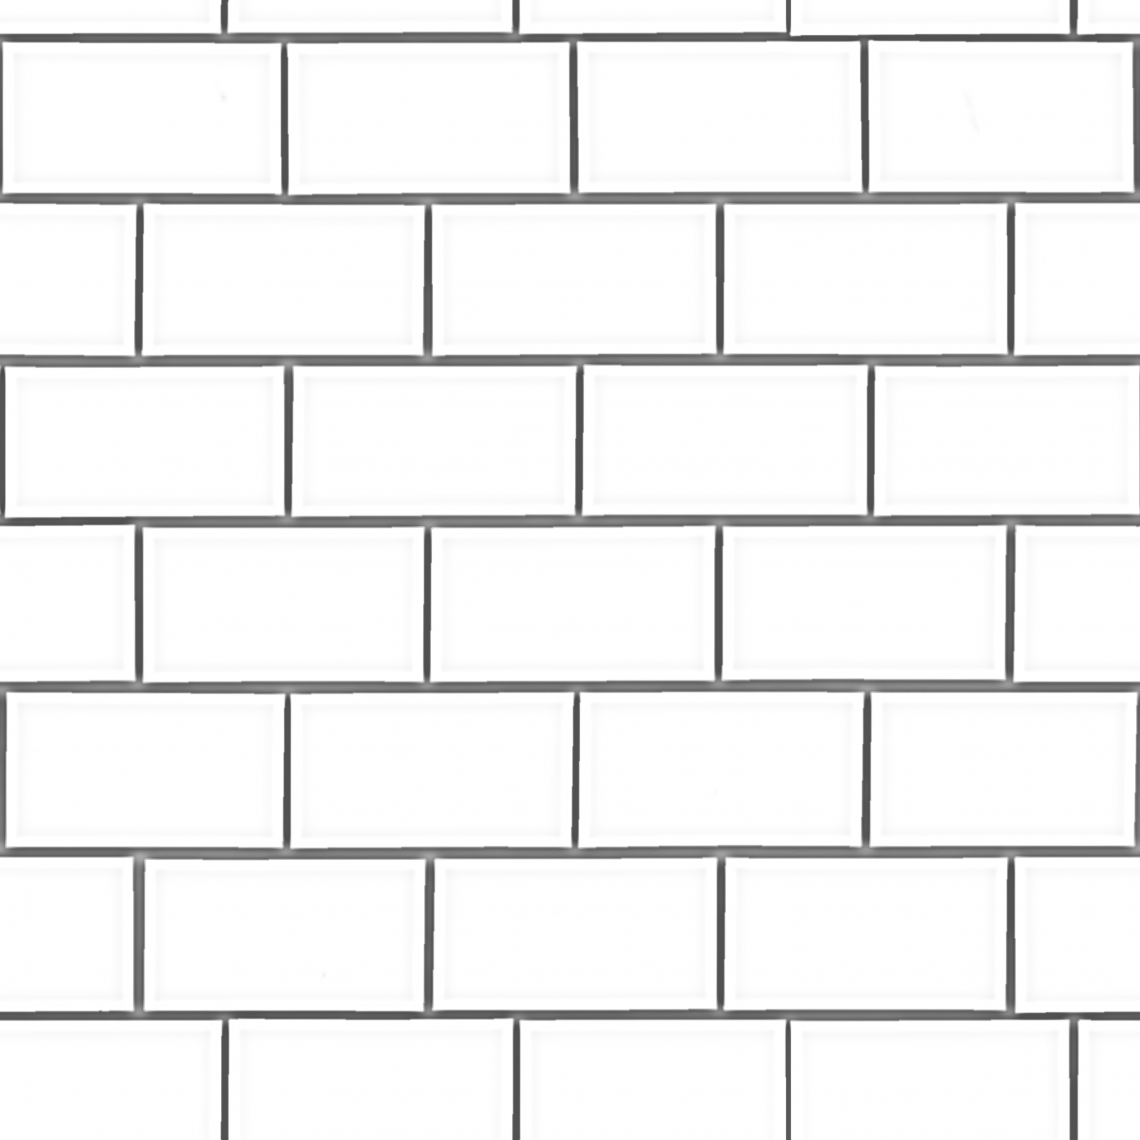 Simple-Tiles-02-Ambient-Occlusion